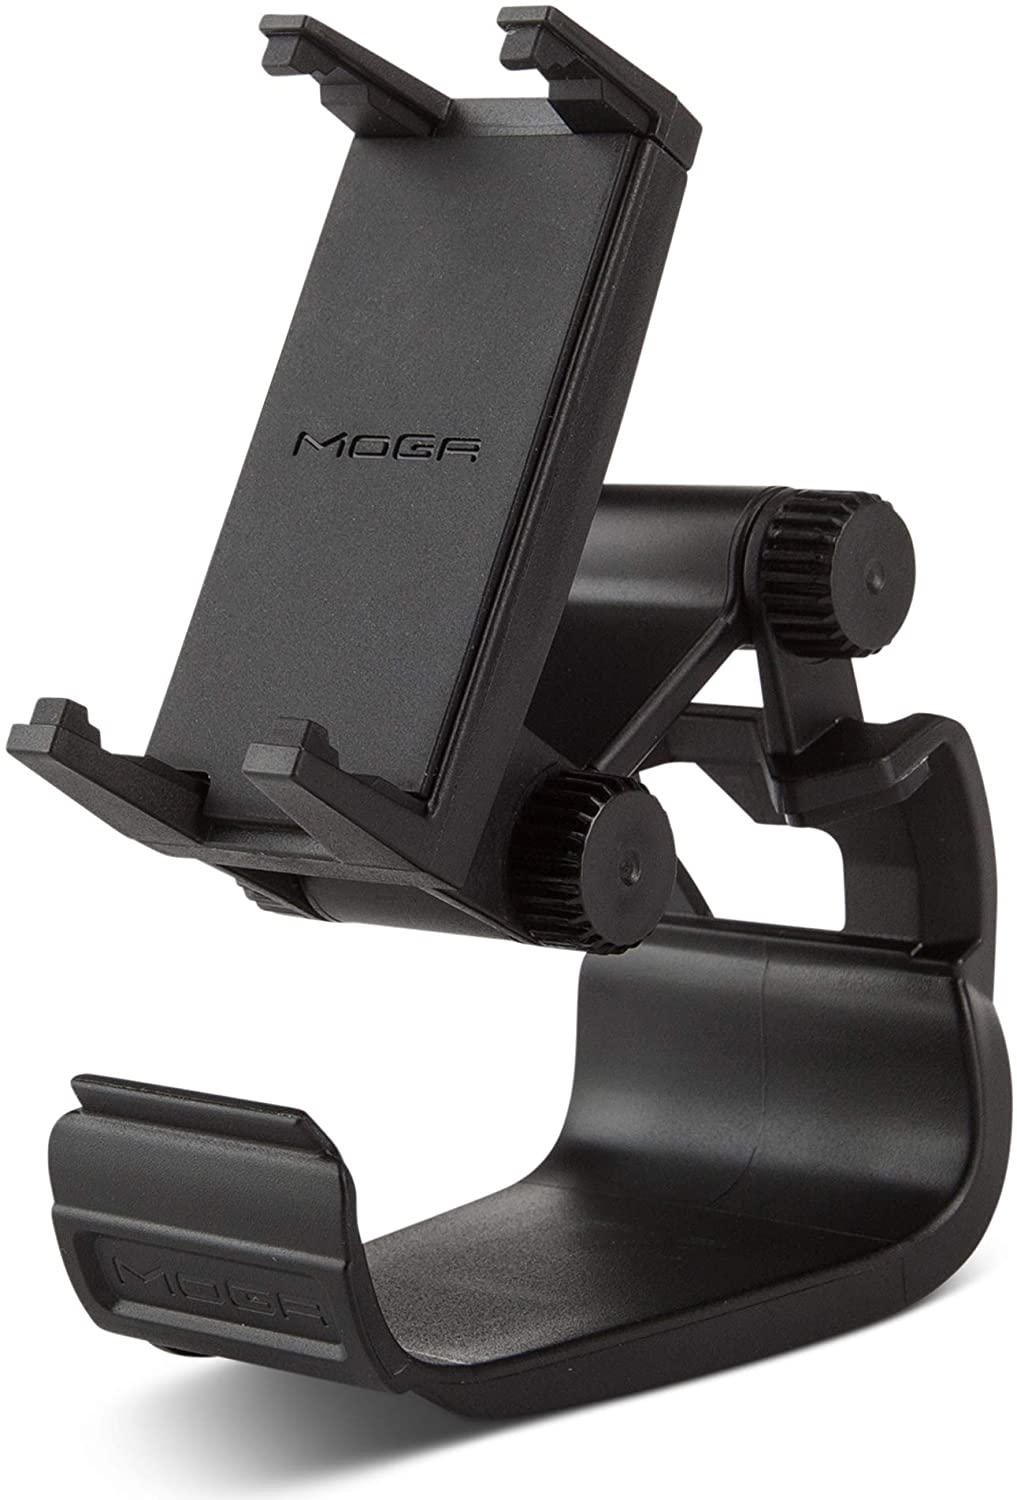 PowerA MOGA Mobile Gaming Clip for Xbox Wireless Controller Review